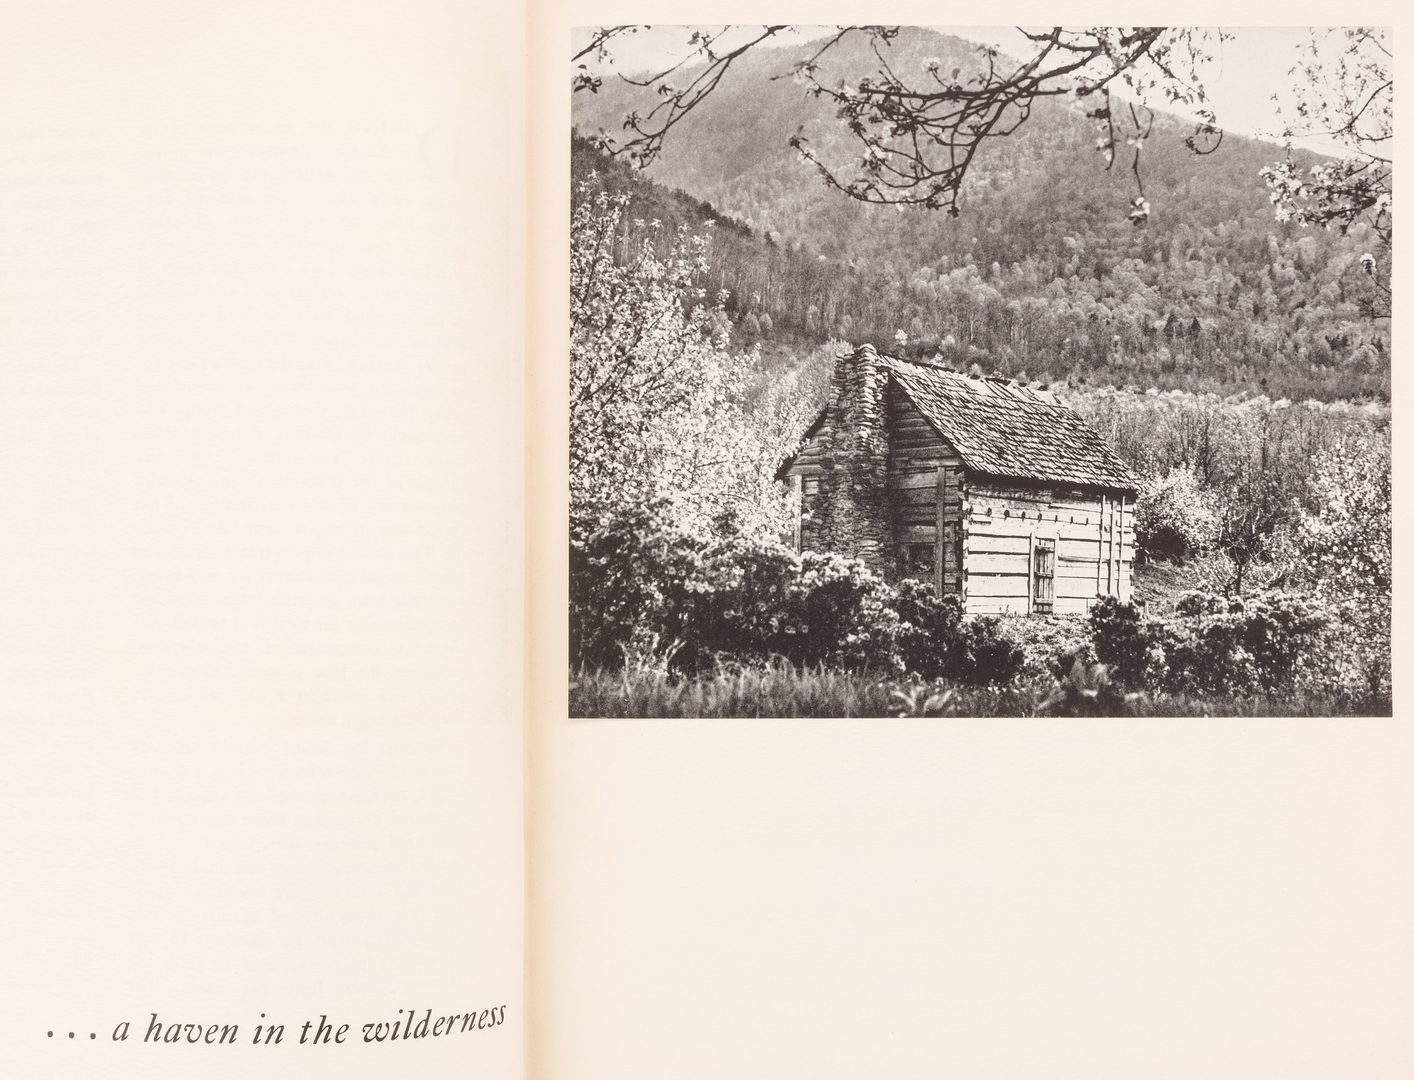 Lot 547: Valhalla in the Smokies, Maxwell/ Exline, 1938